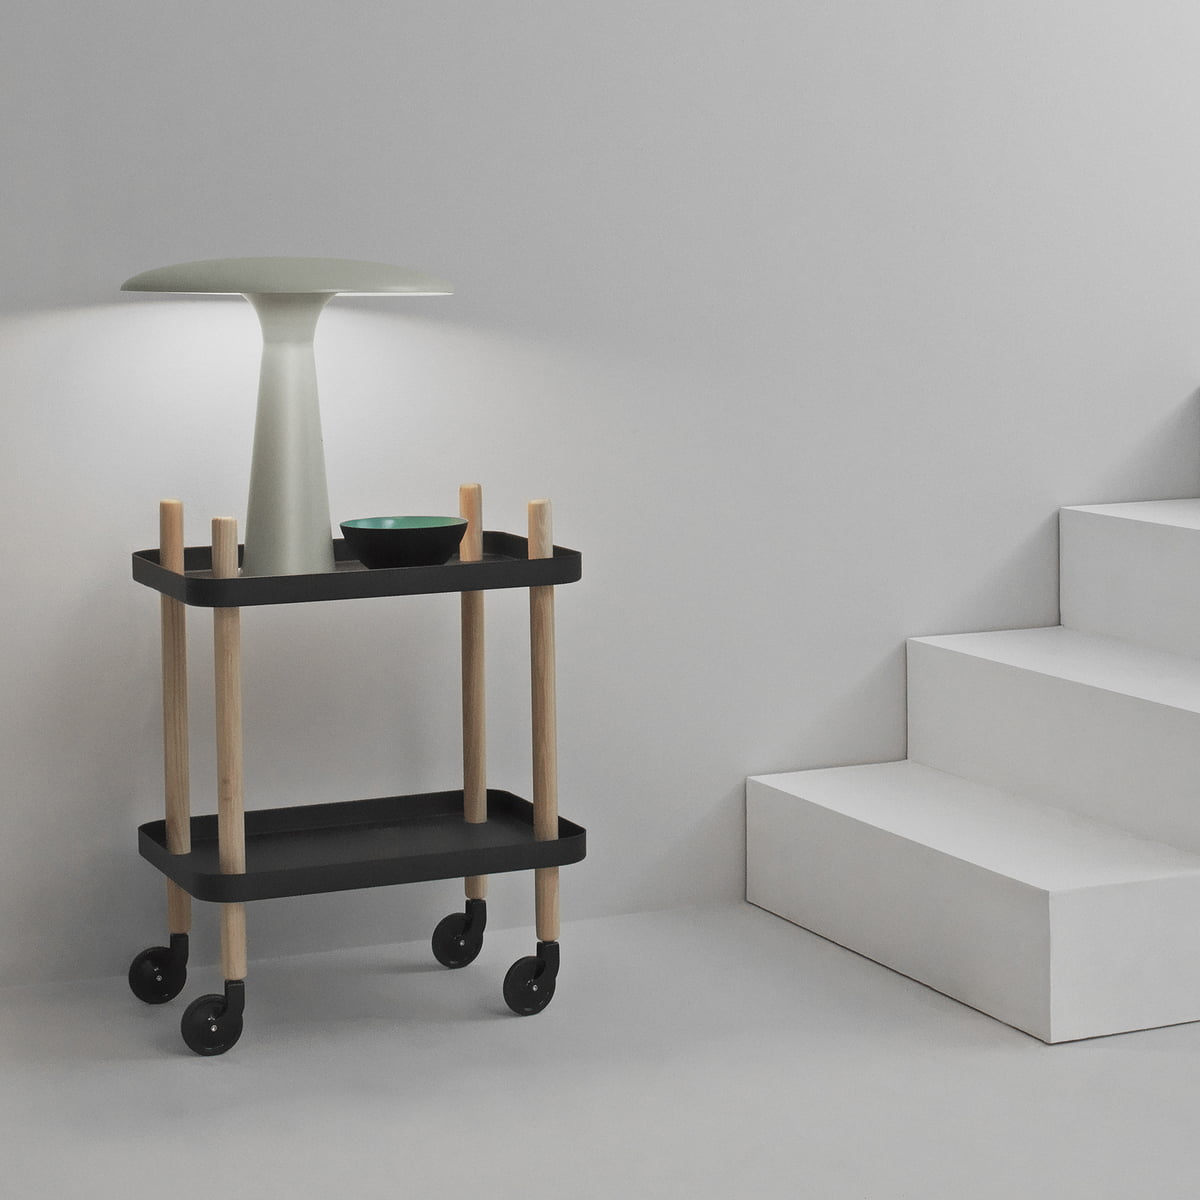 shelter bordlampe fra normann copenhagen. Black Bedroom Furniture Sets. Home Design Ideas